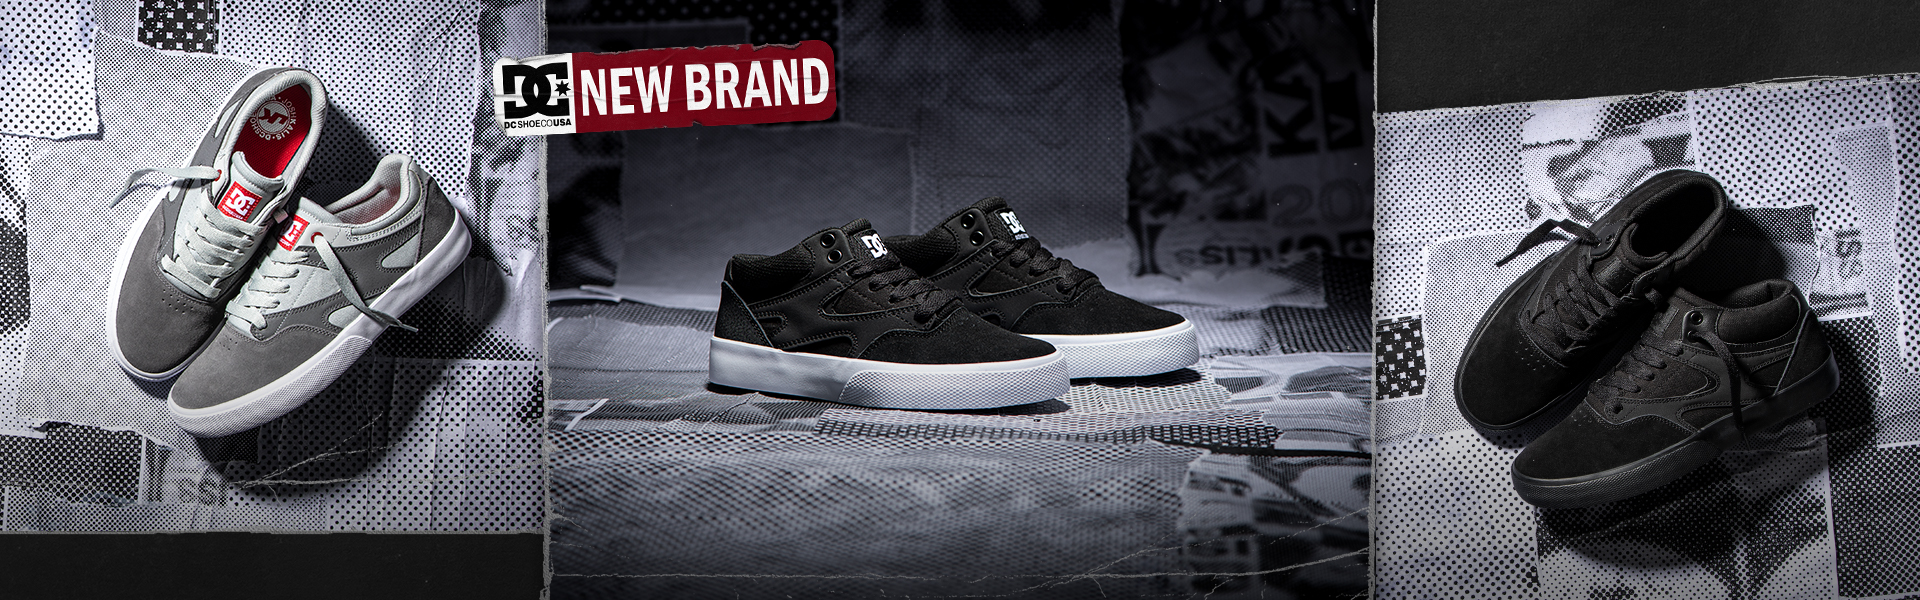 New DC Shoes modells in black, white and gray